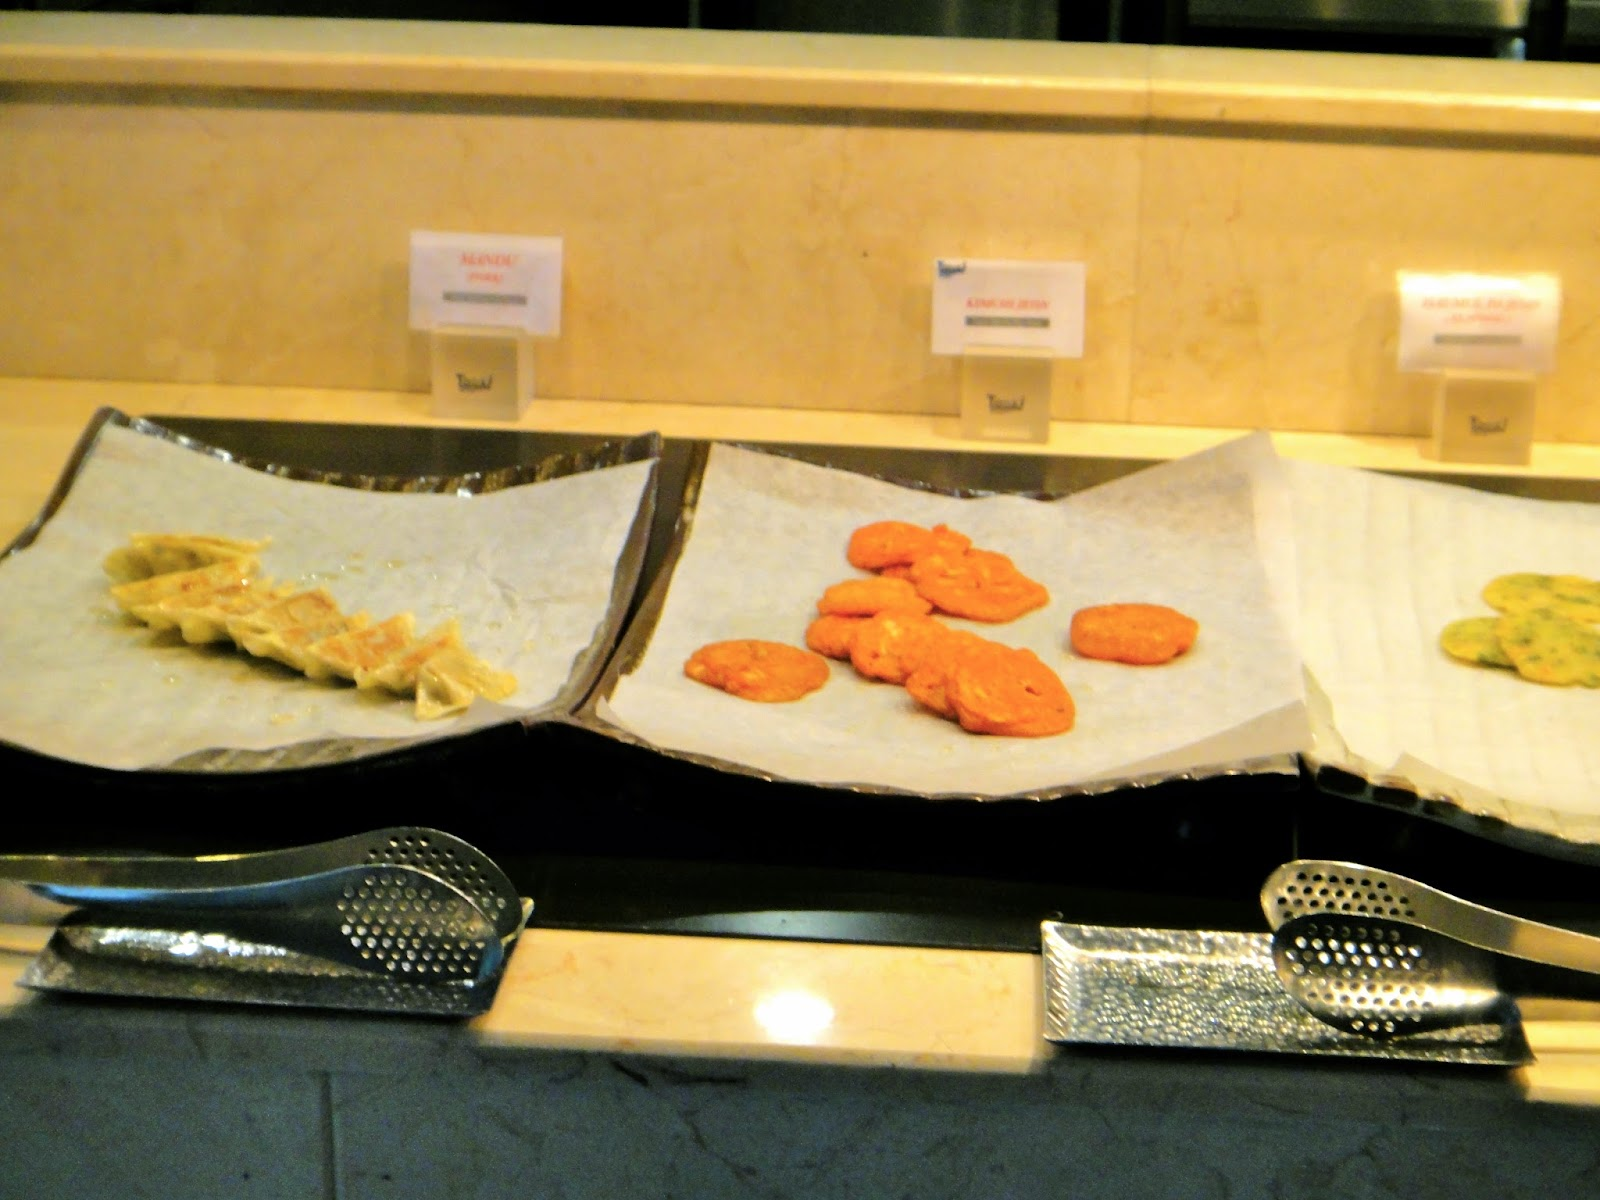 Fried Food Station at Todai Marina Bay Sands Singapore